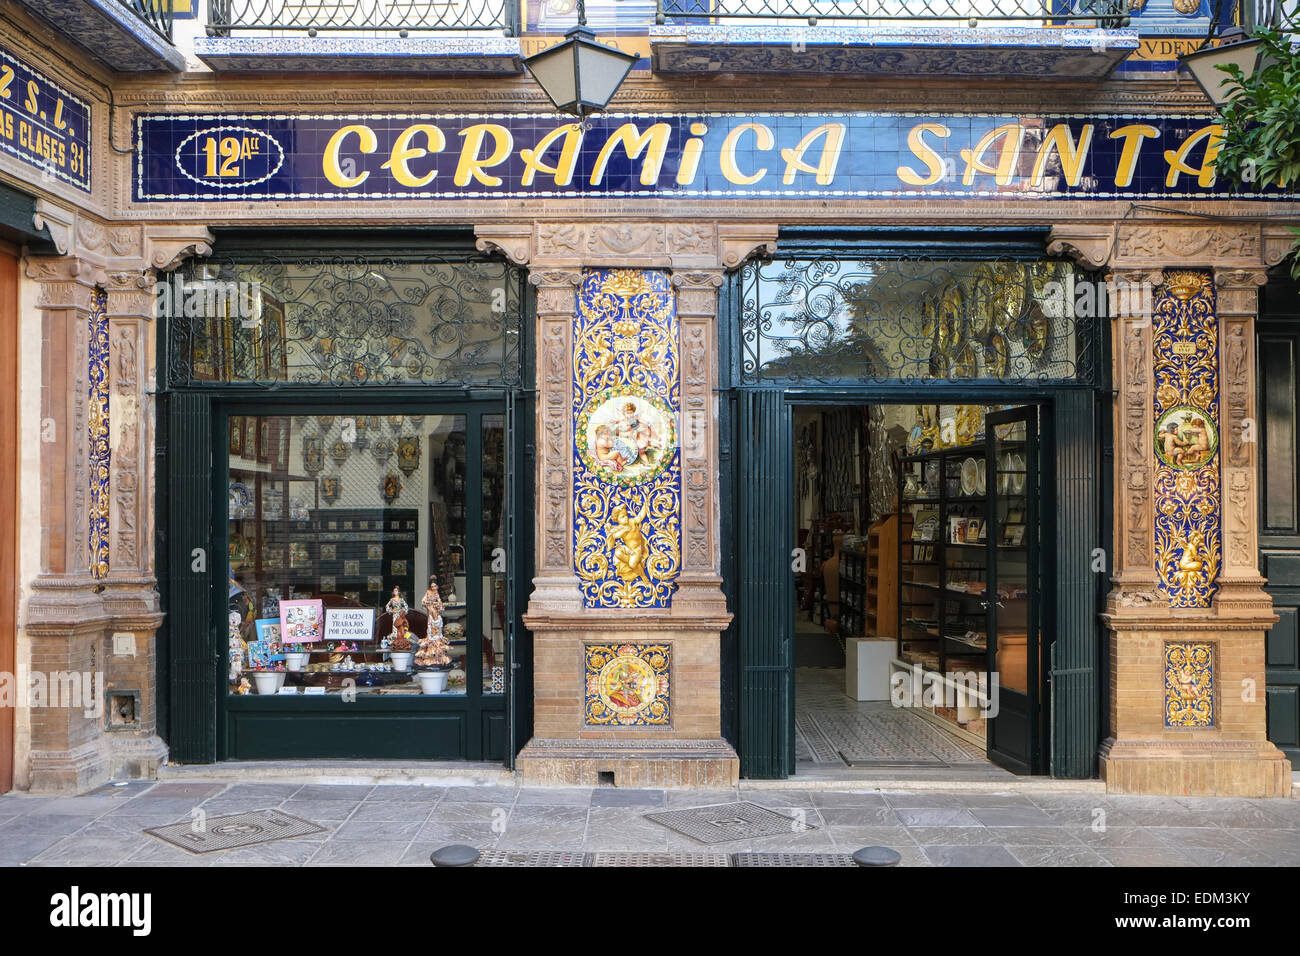 Tradional Ceramic Tile shop Seville Spain Stock Photo, Royalty ...